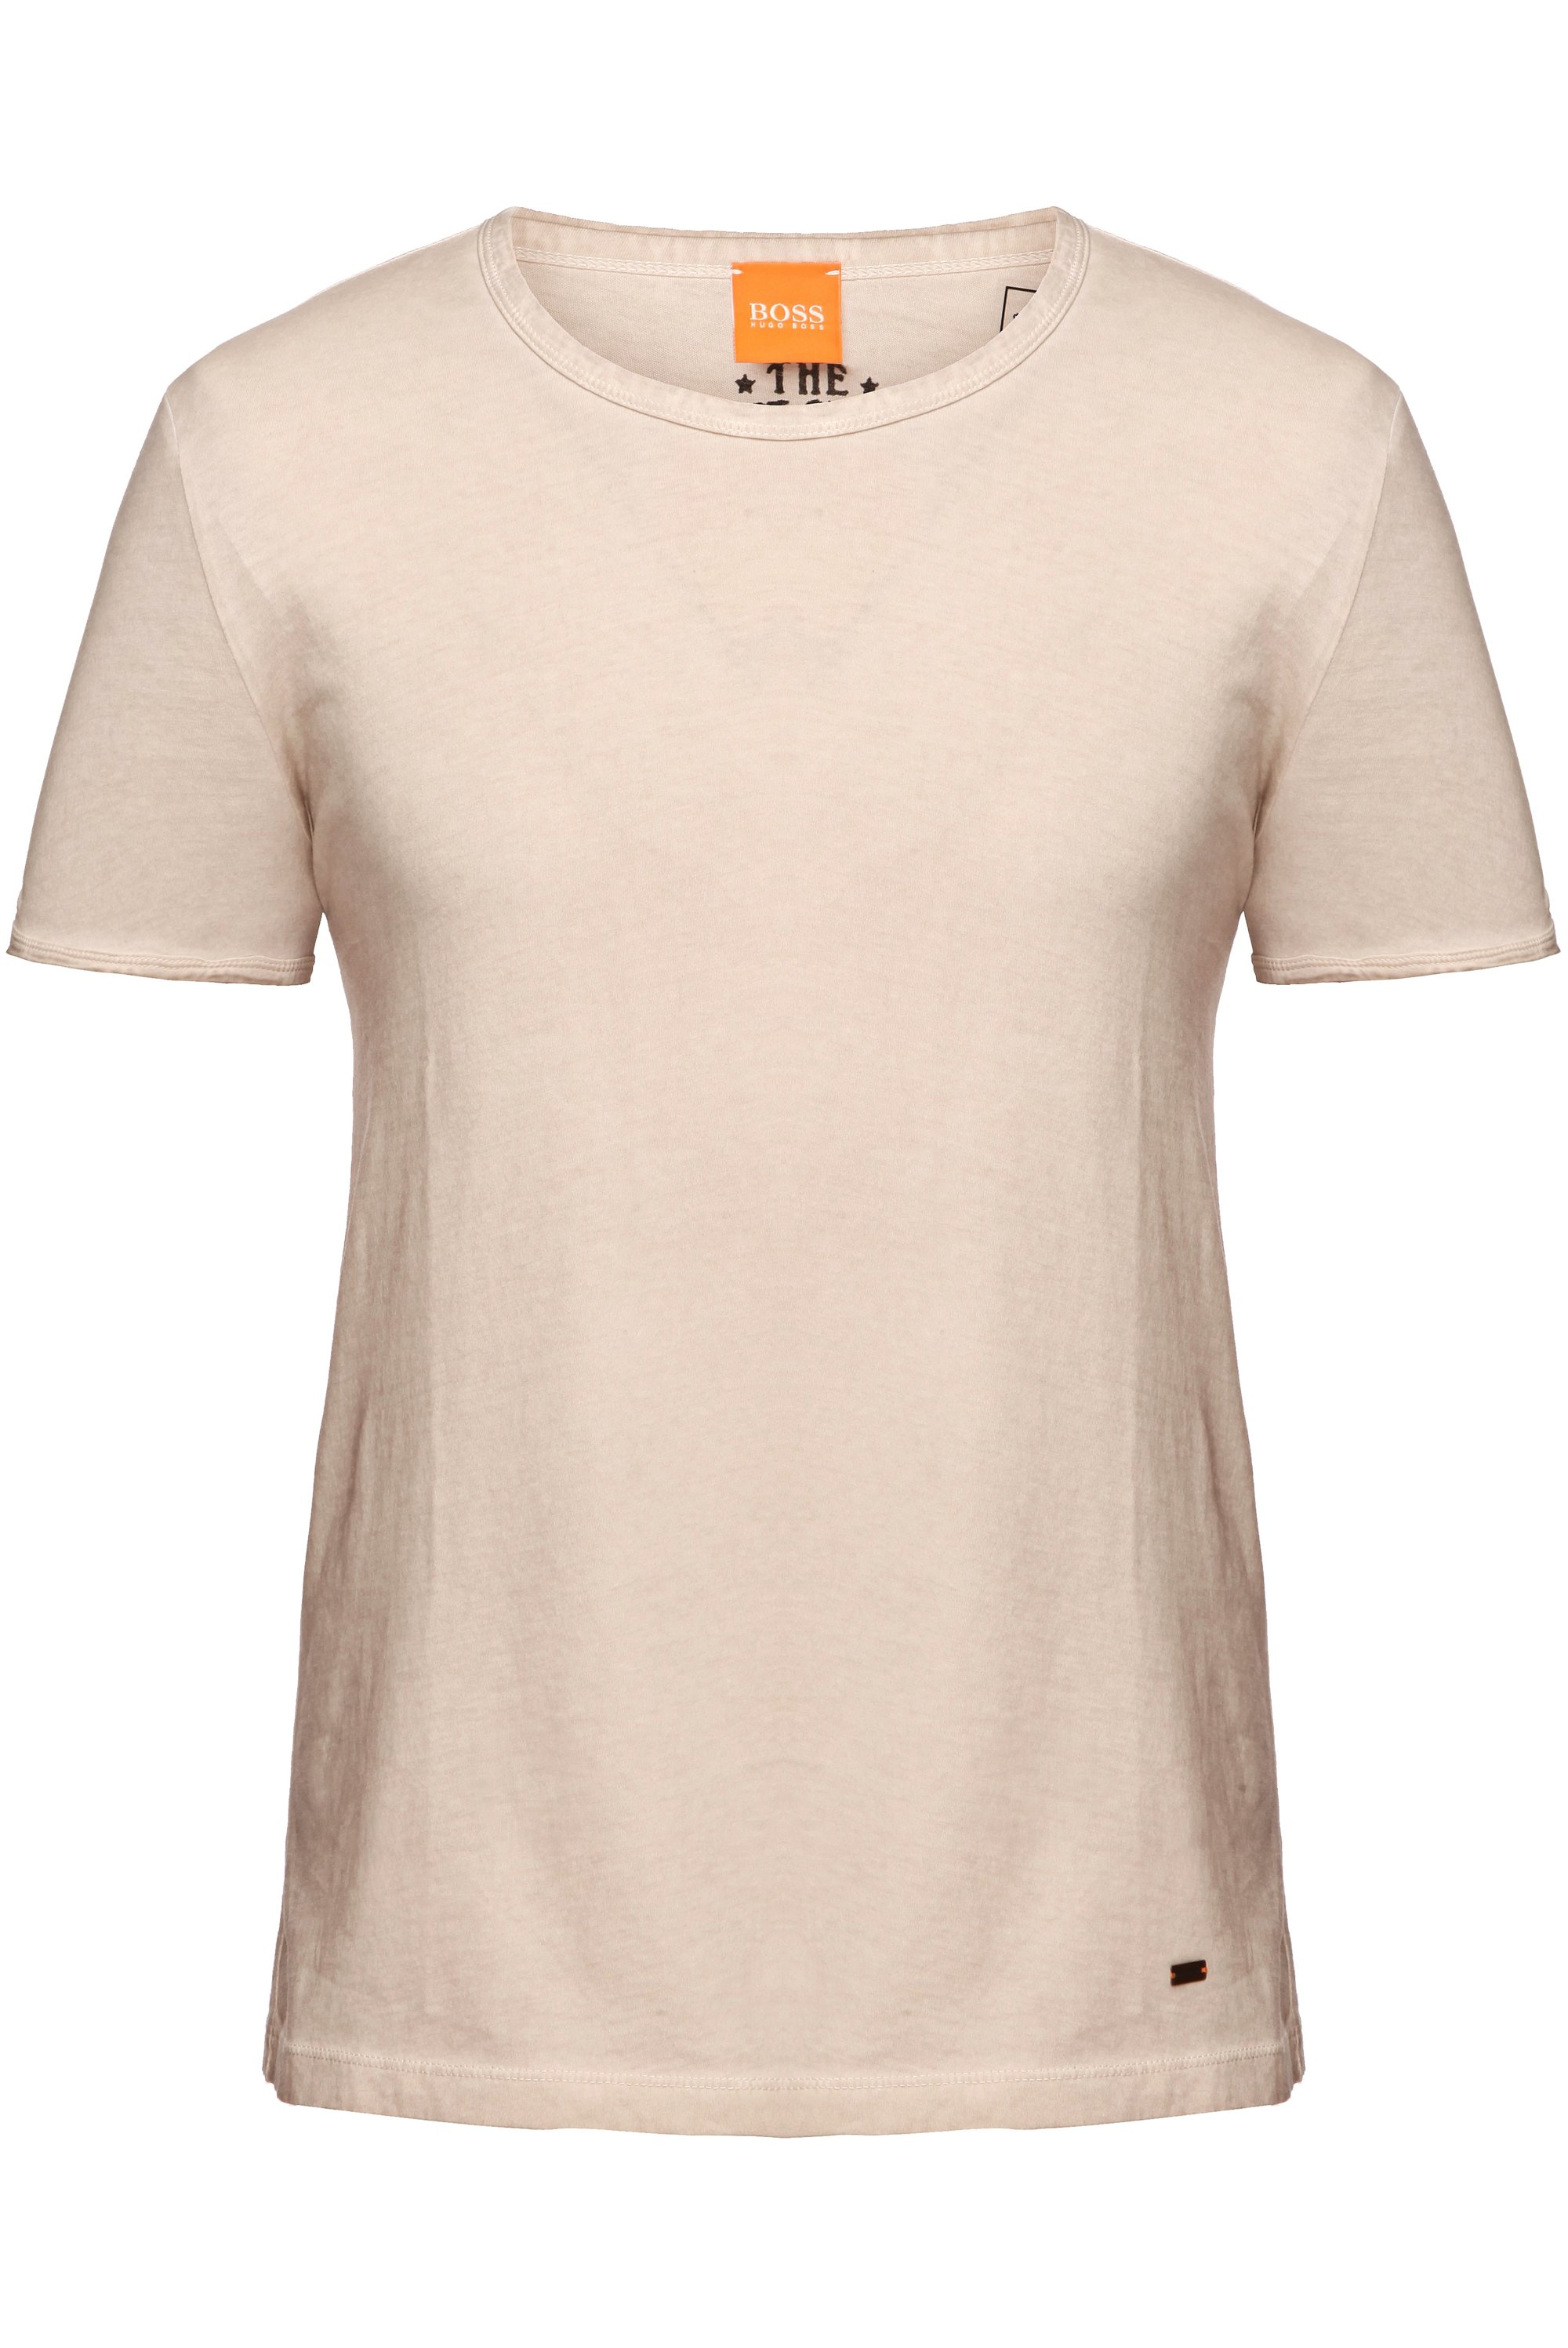 Regular-fit T-shirt van garment dyed katoen, Lichtbeige